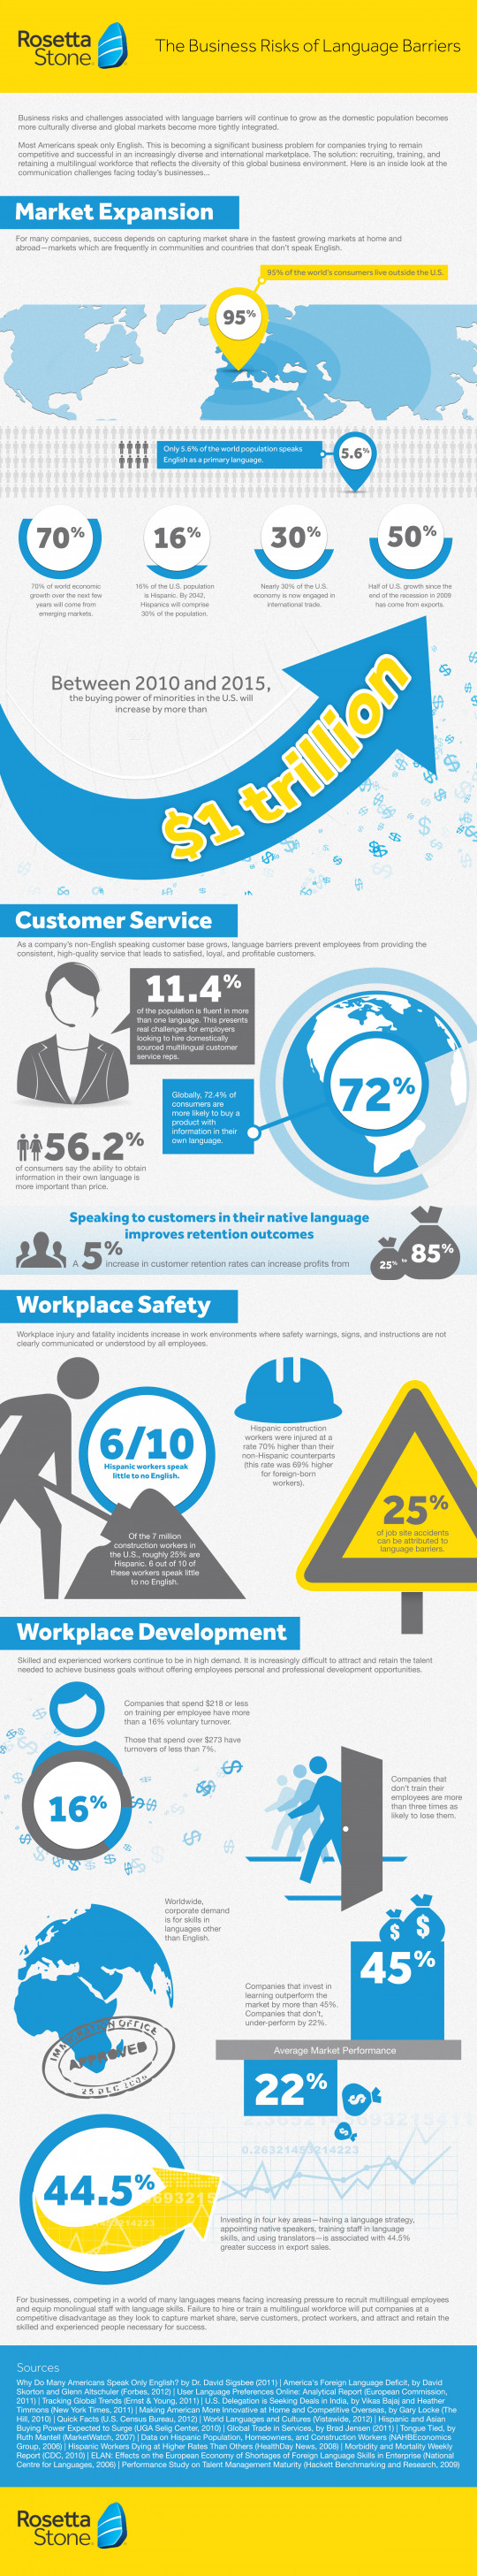 The Business Risks of Language Barriers